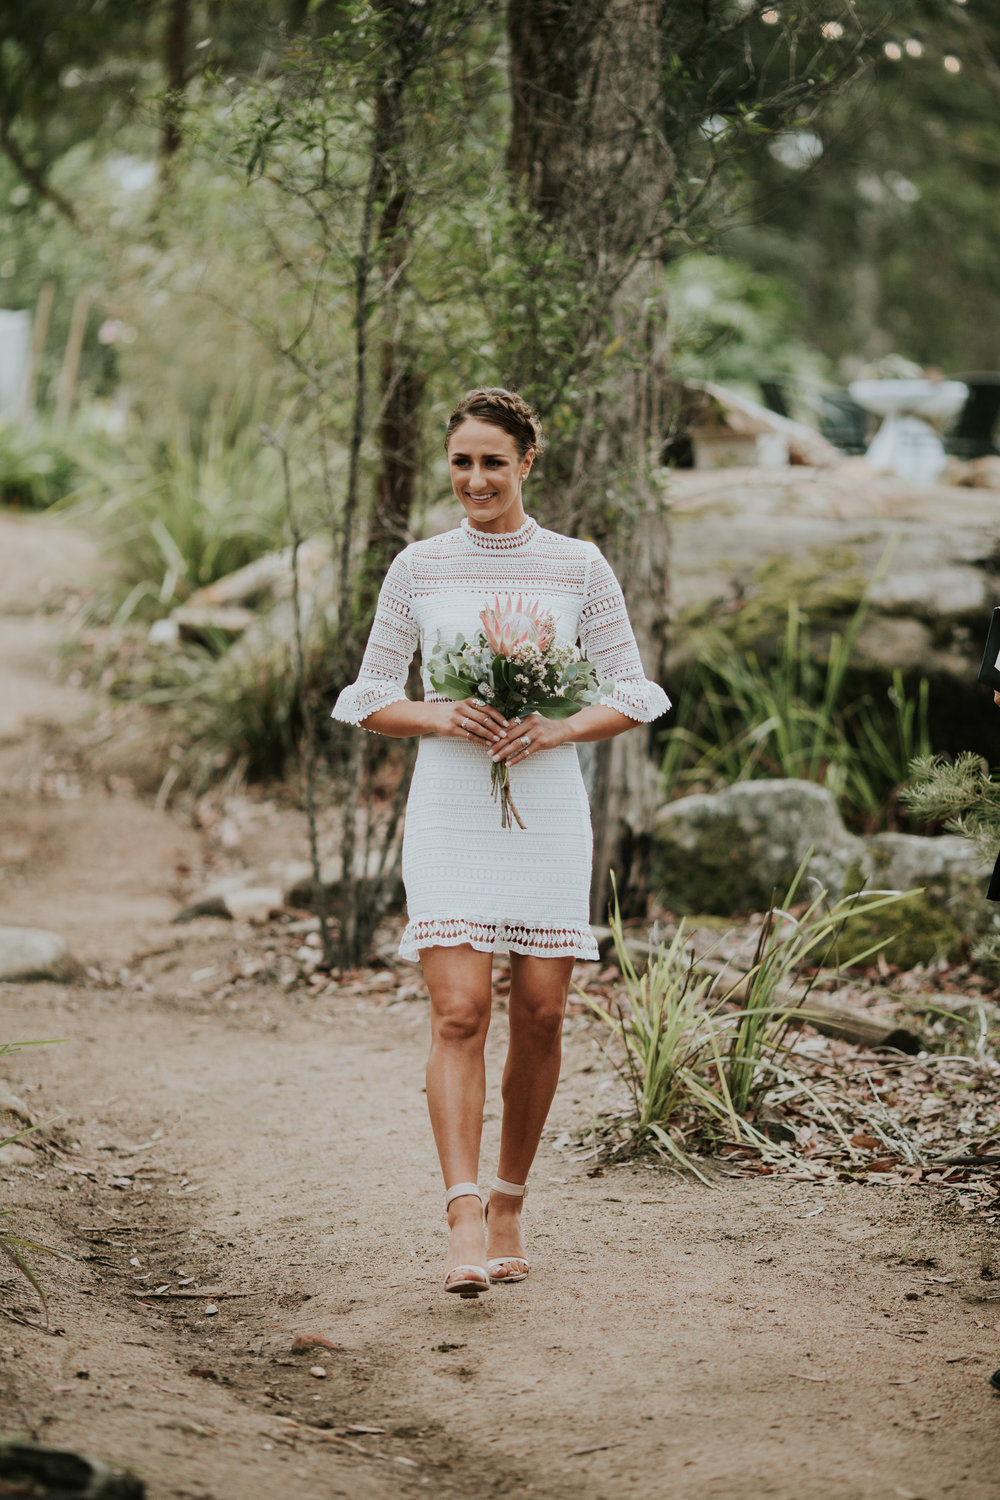 Jesse+Matt+Kangaroo+Valley+Wildwood+Boho+Relaxed+wedding+-92.jpg